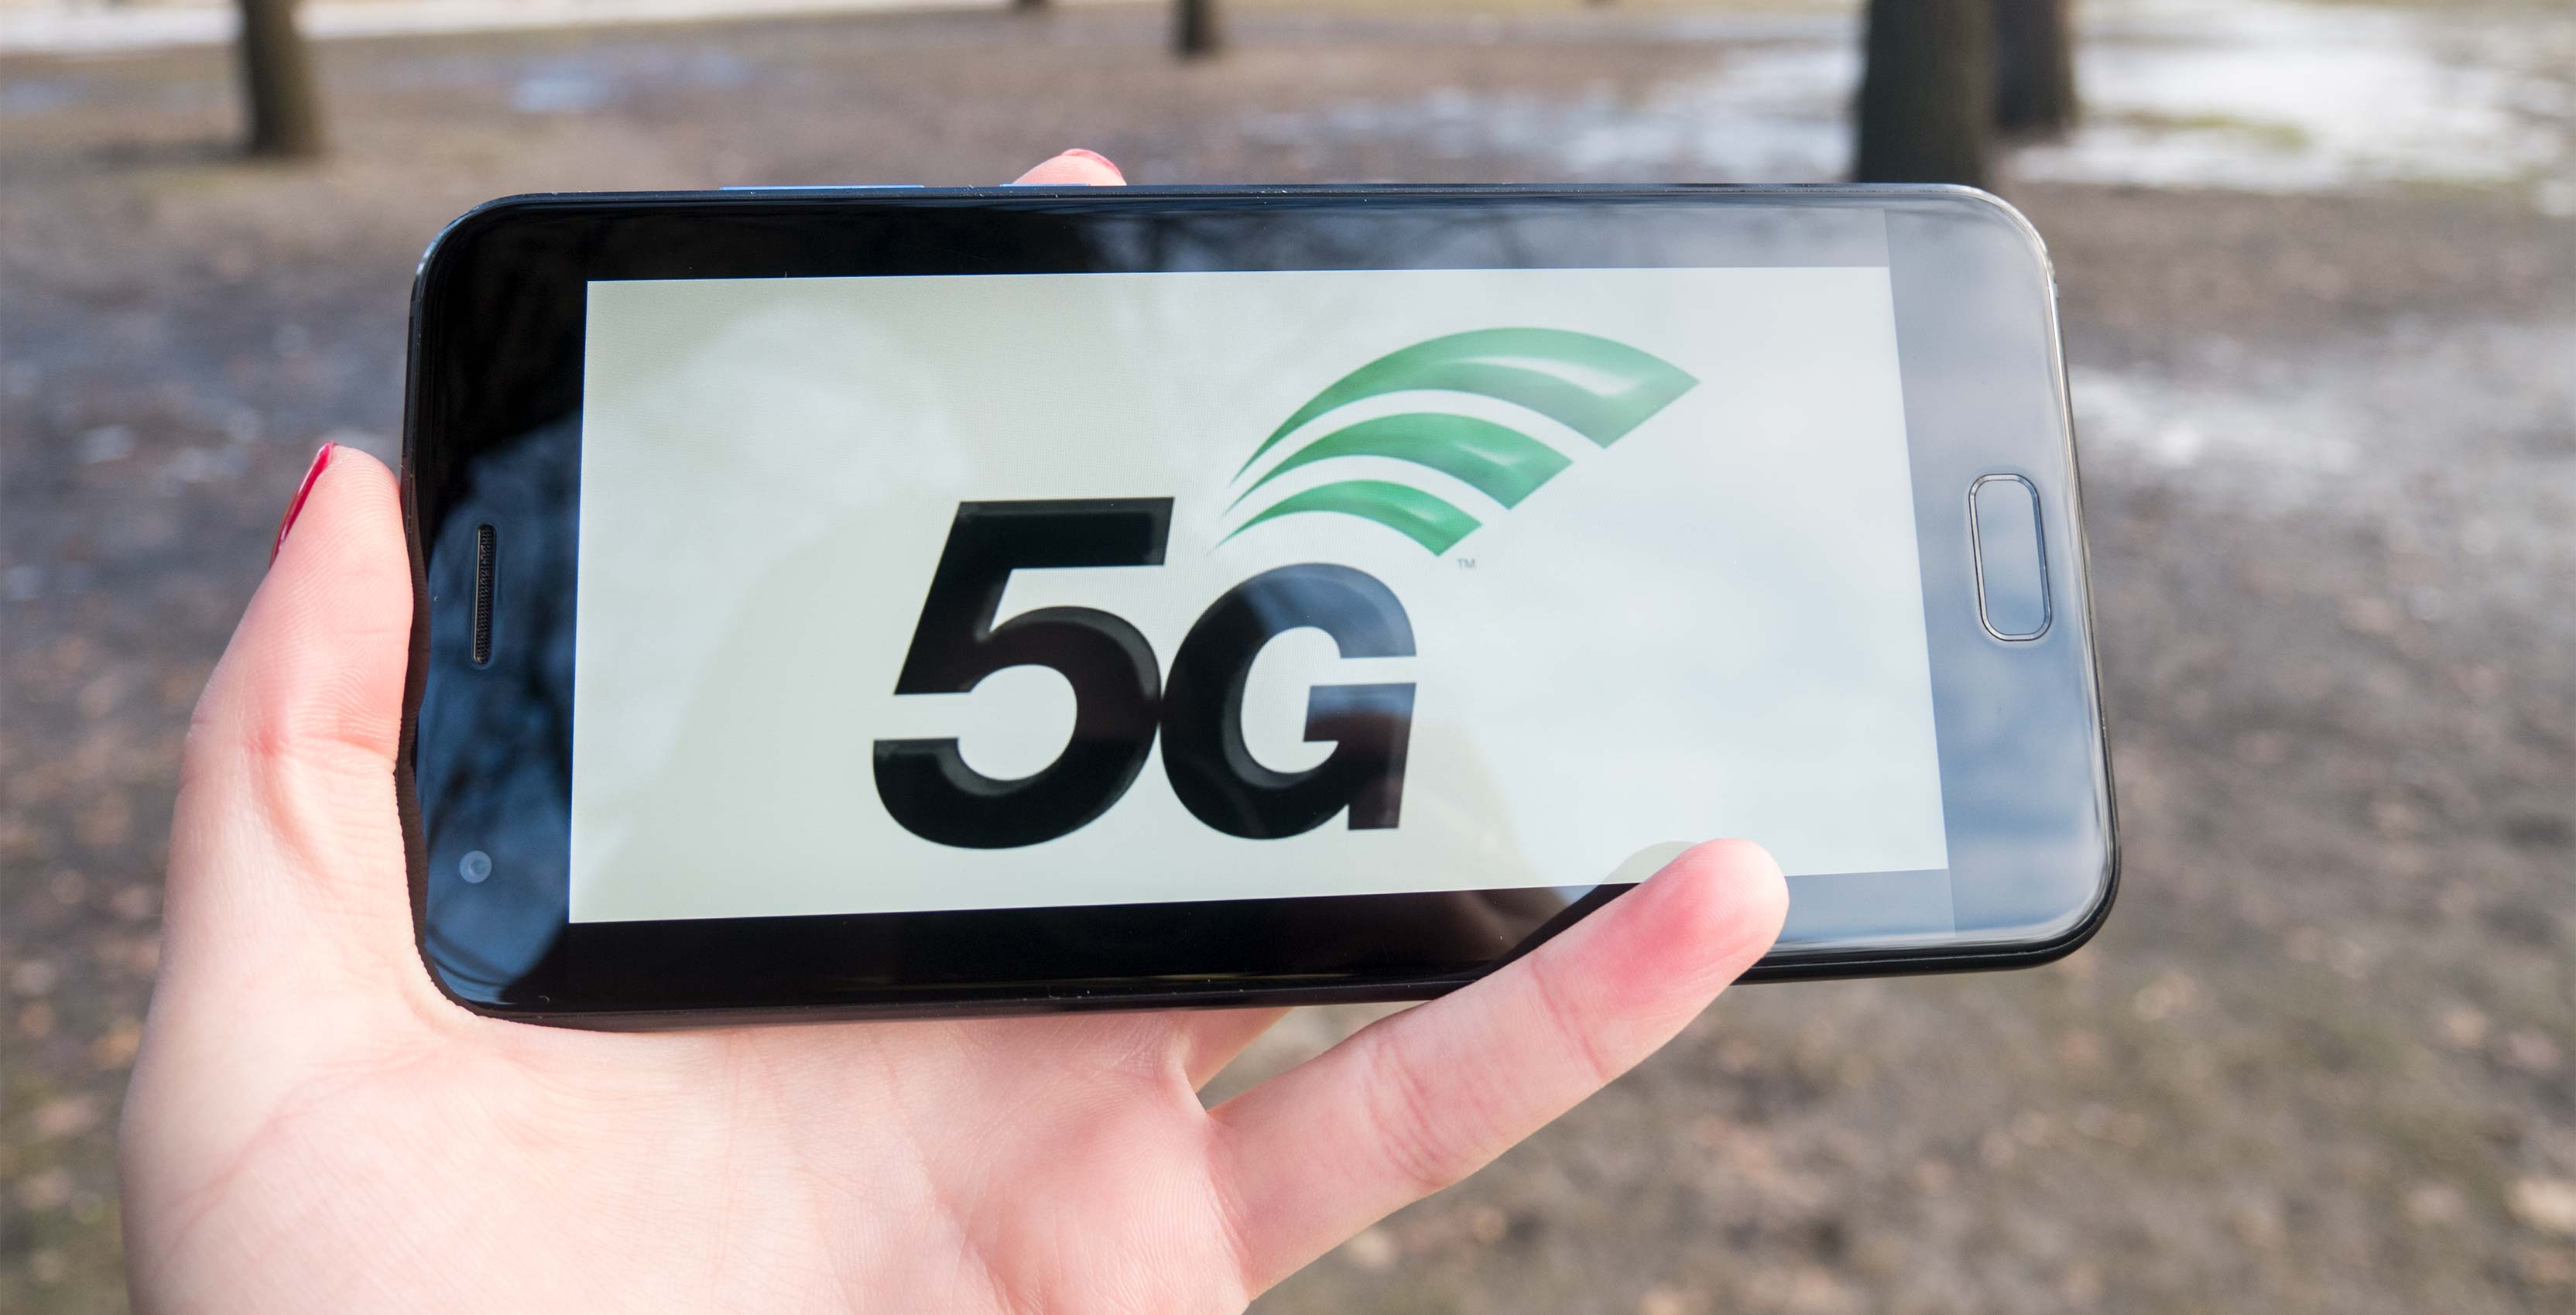 Everything you need to know about 5g in canada in future segments well explore how 5g will transform various aspects of life in canada including automotive technology rural connectivity solutioingenieria Images